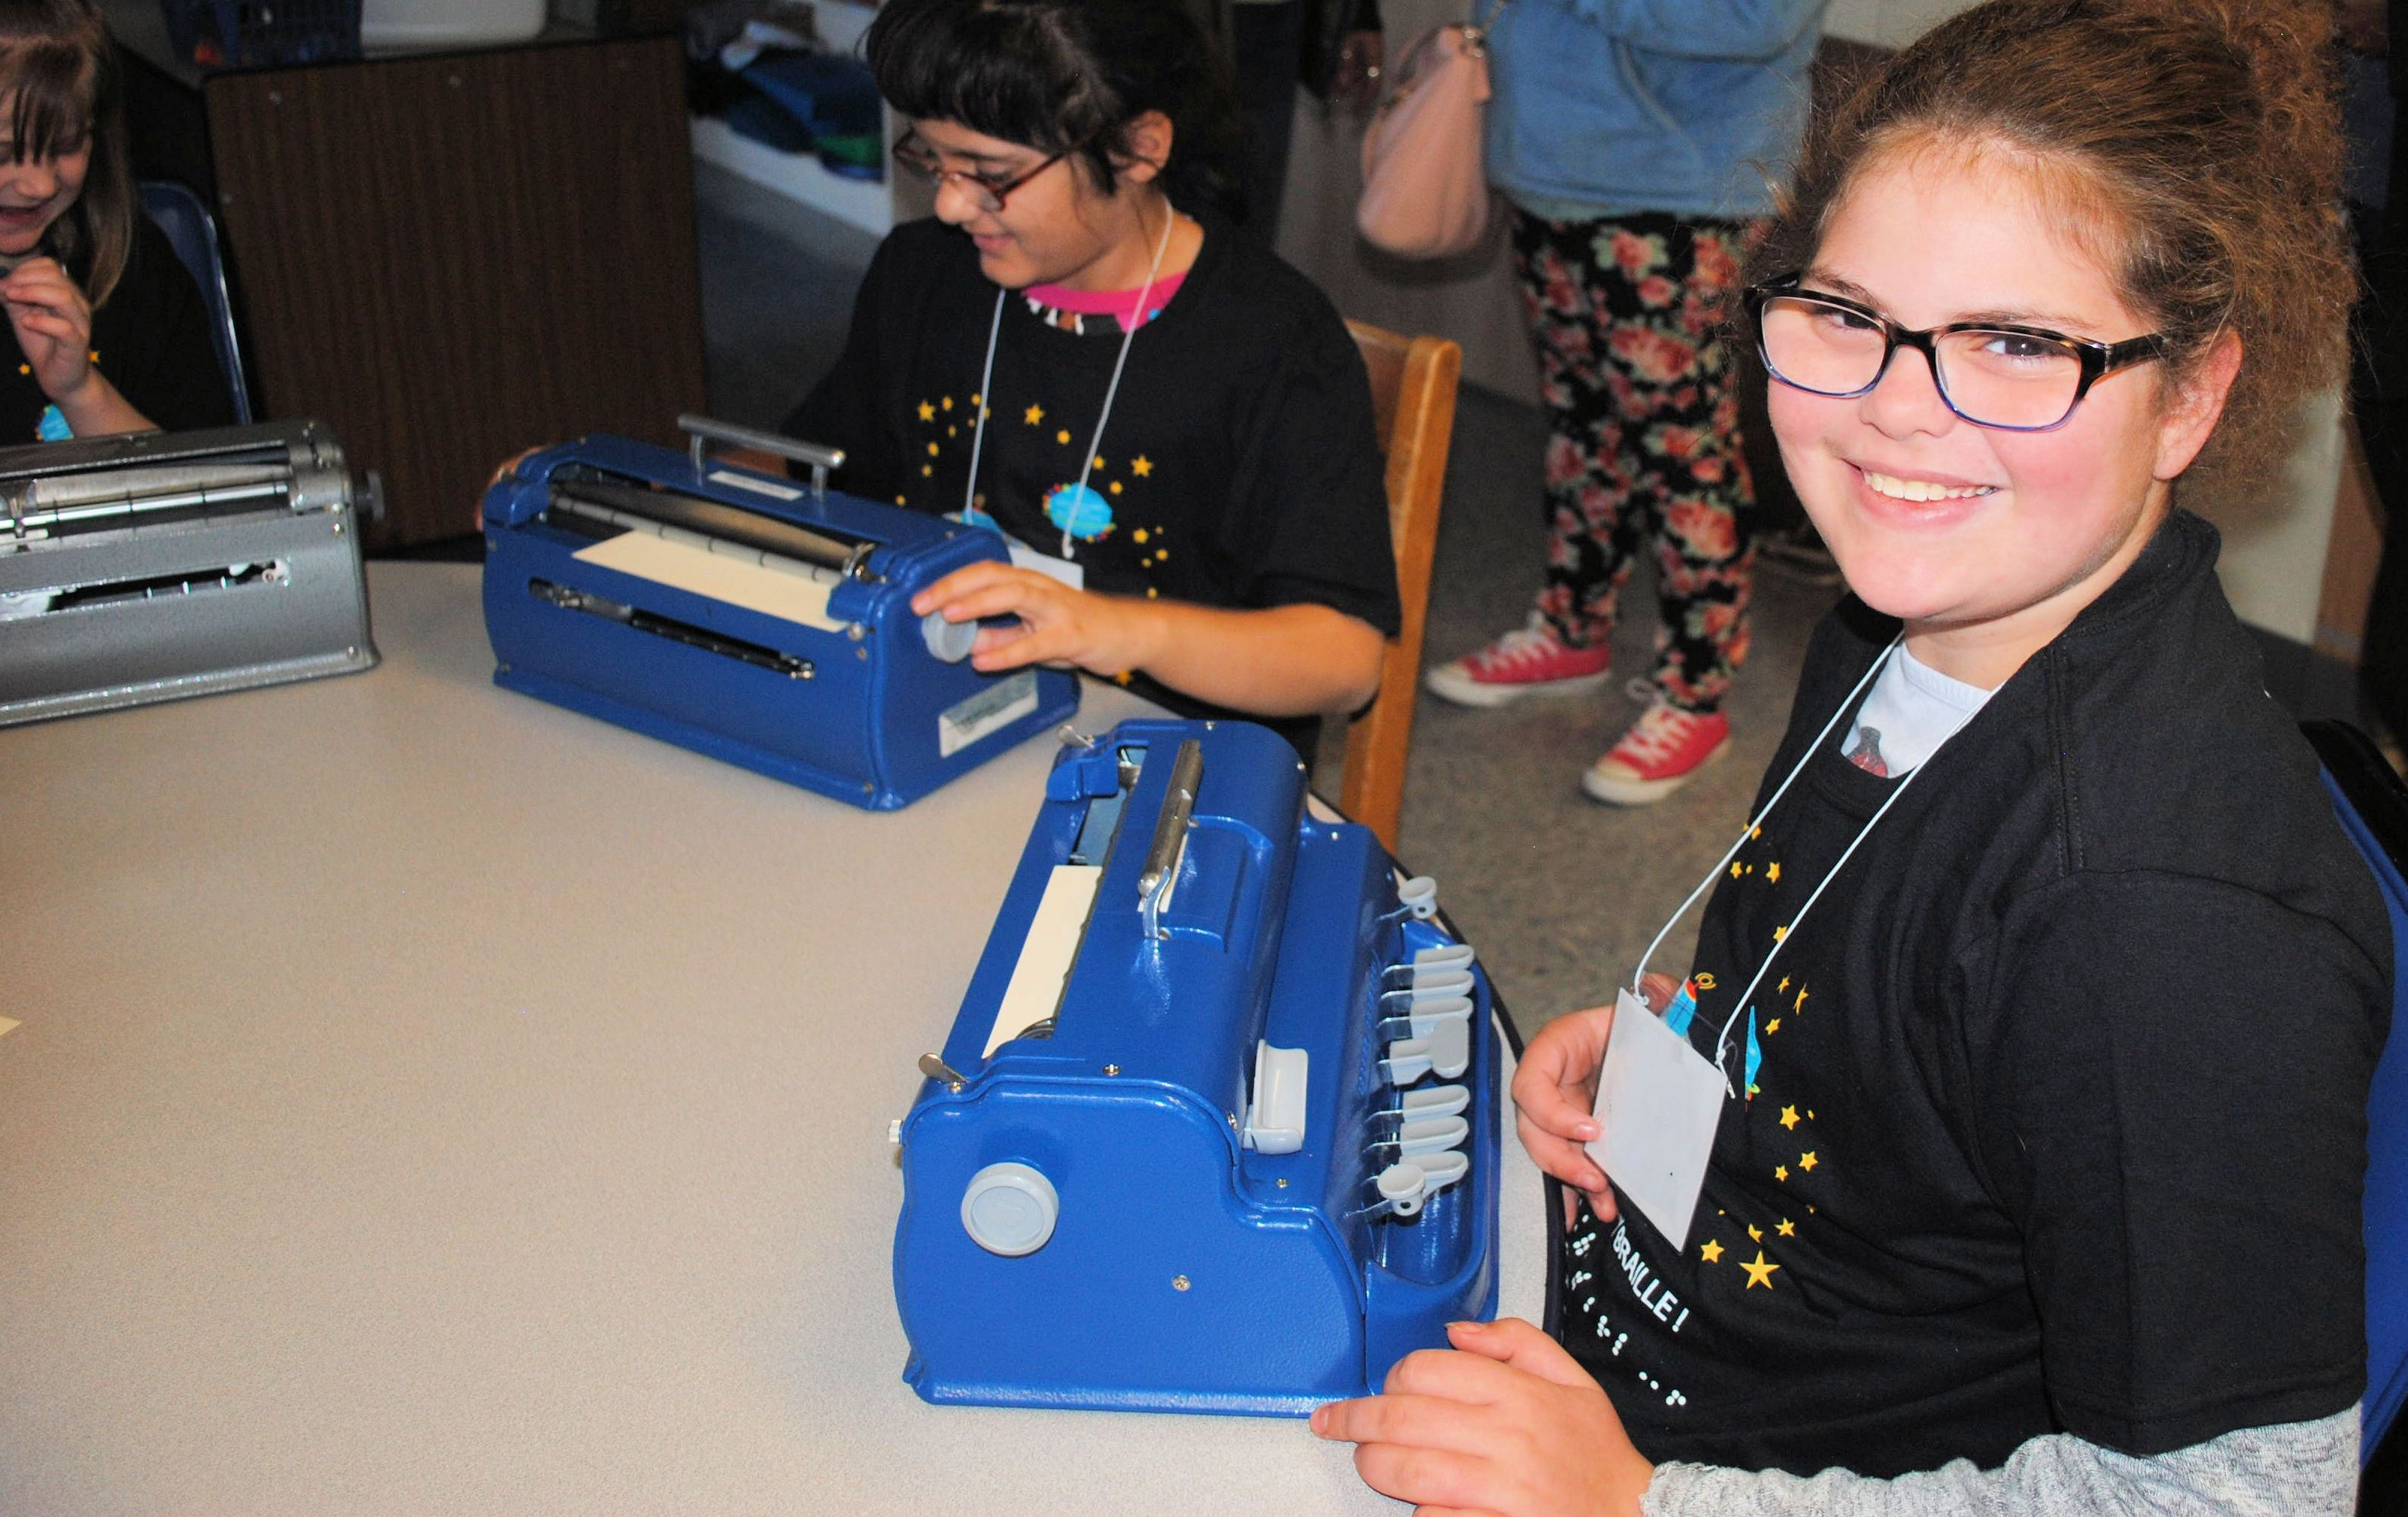 Student Sitting At A Table, Looking At Camera With A Large Smile. Her Braille Writer Is On The Table.